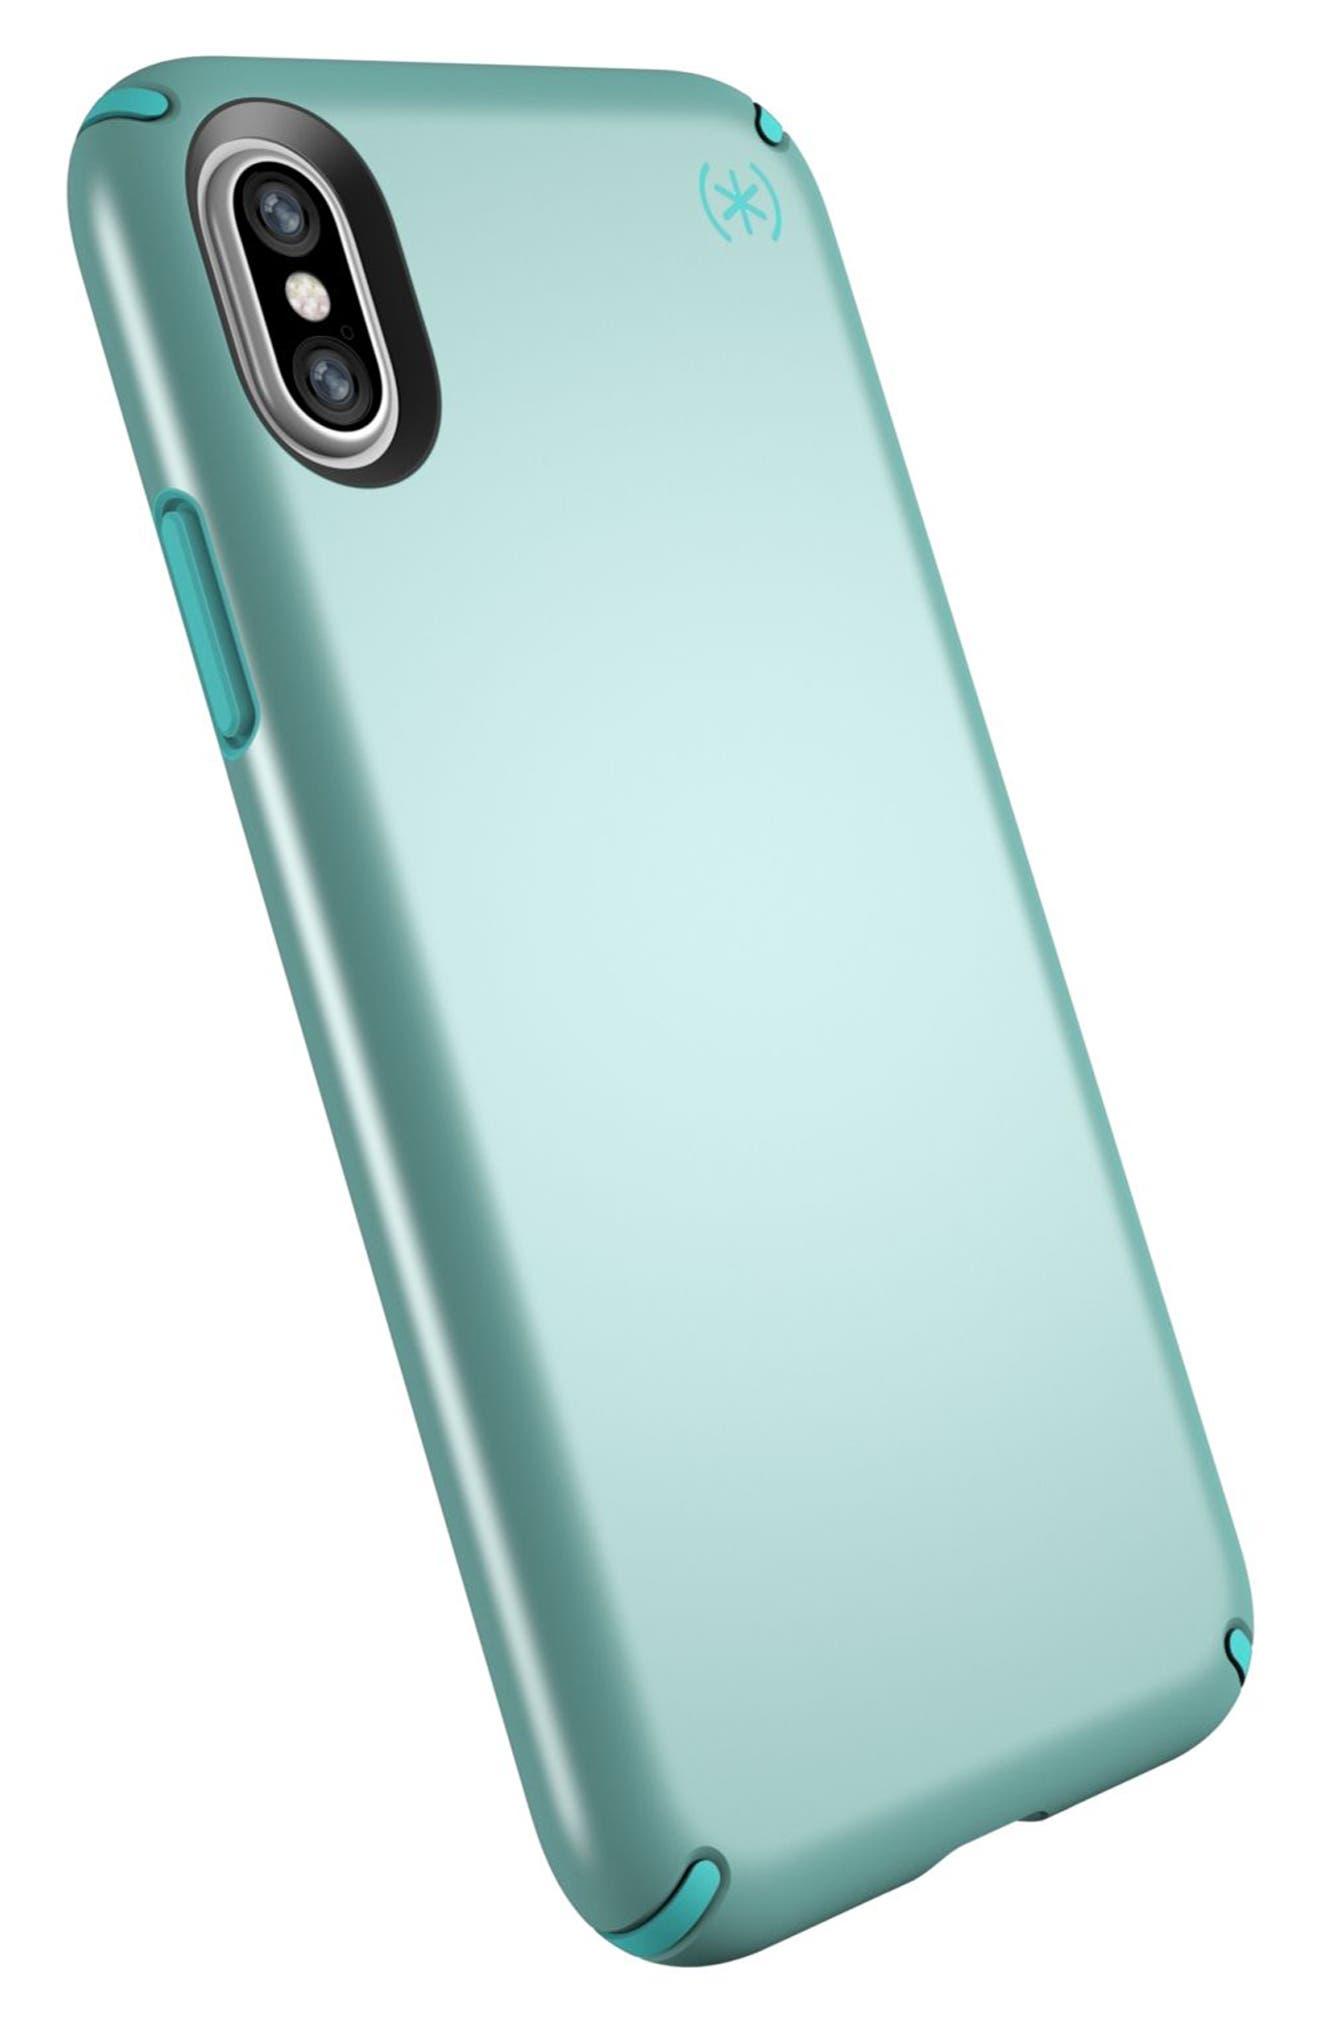 SPECK, iPhone X & Xs Case, Alternate thumbnail 8, color, PEPPERMINT GREEN / TEAL